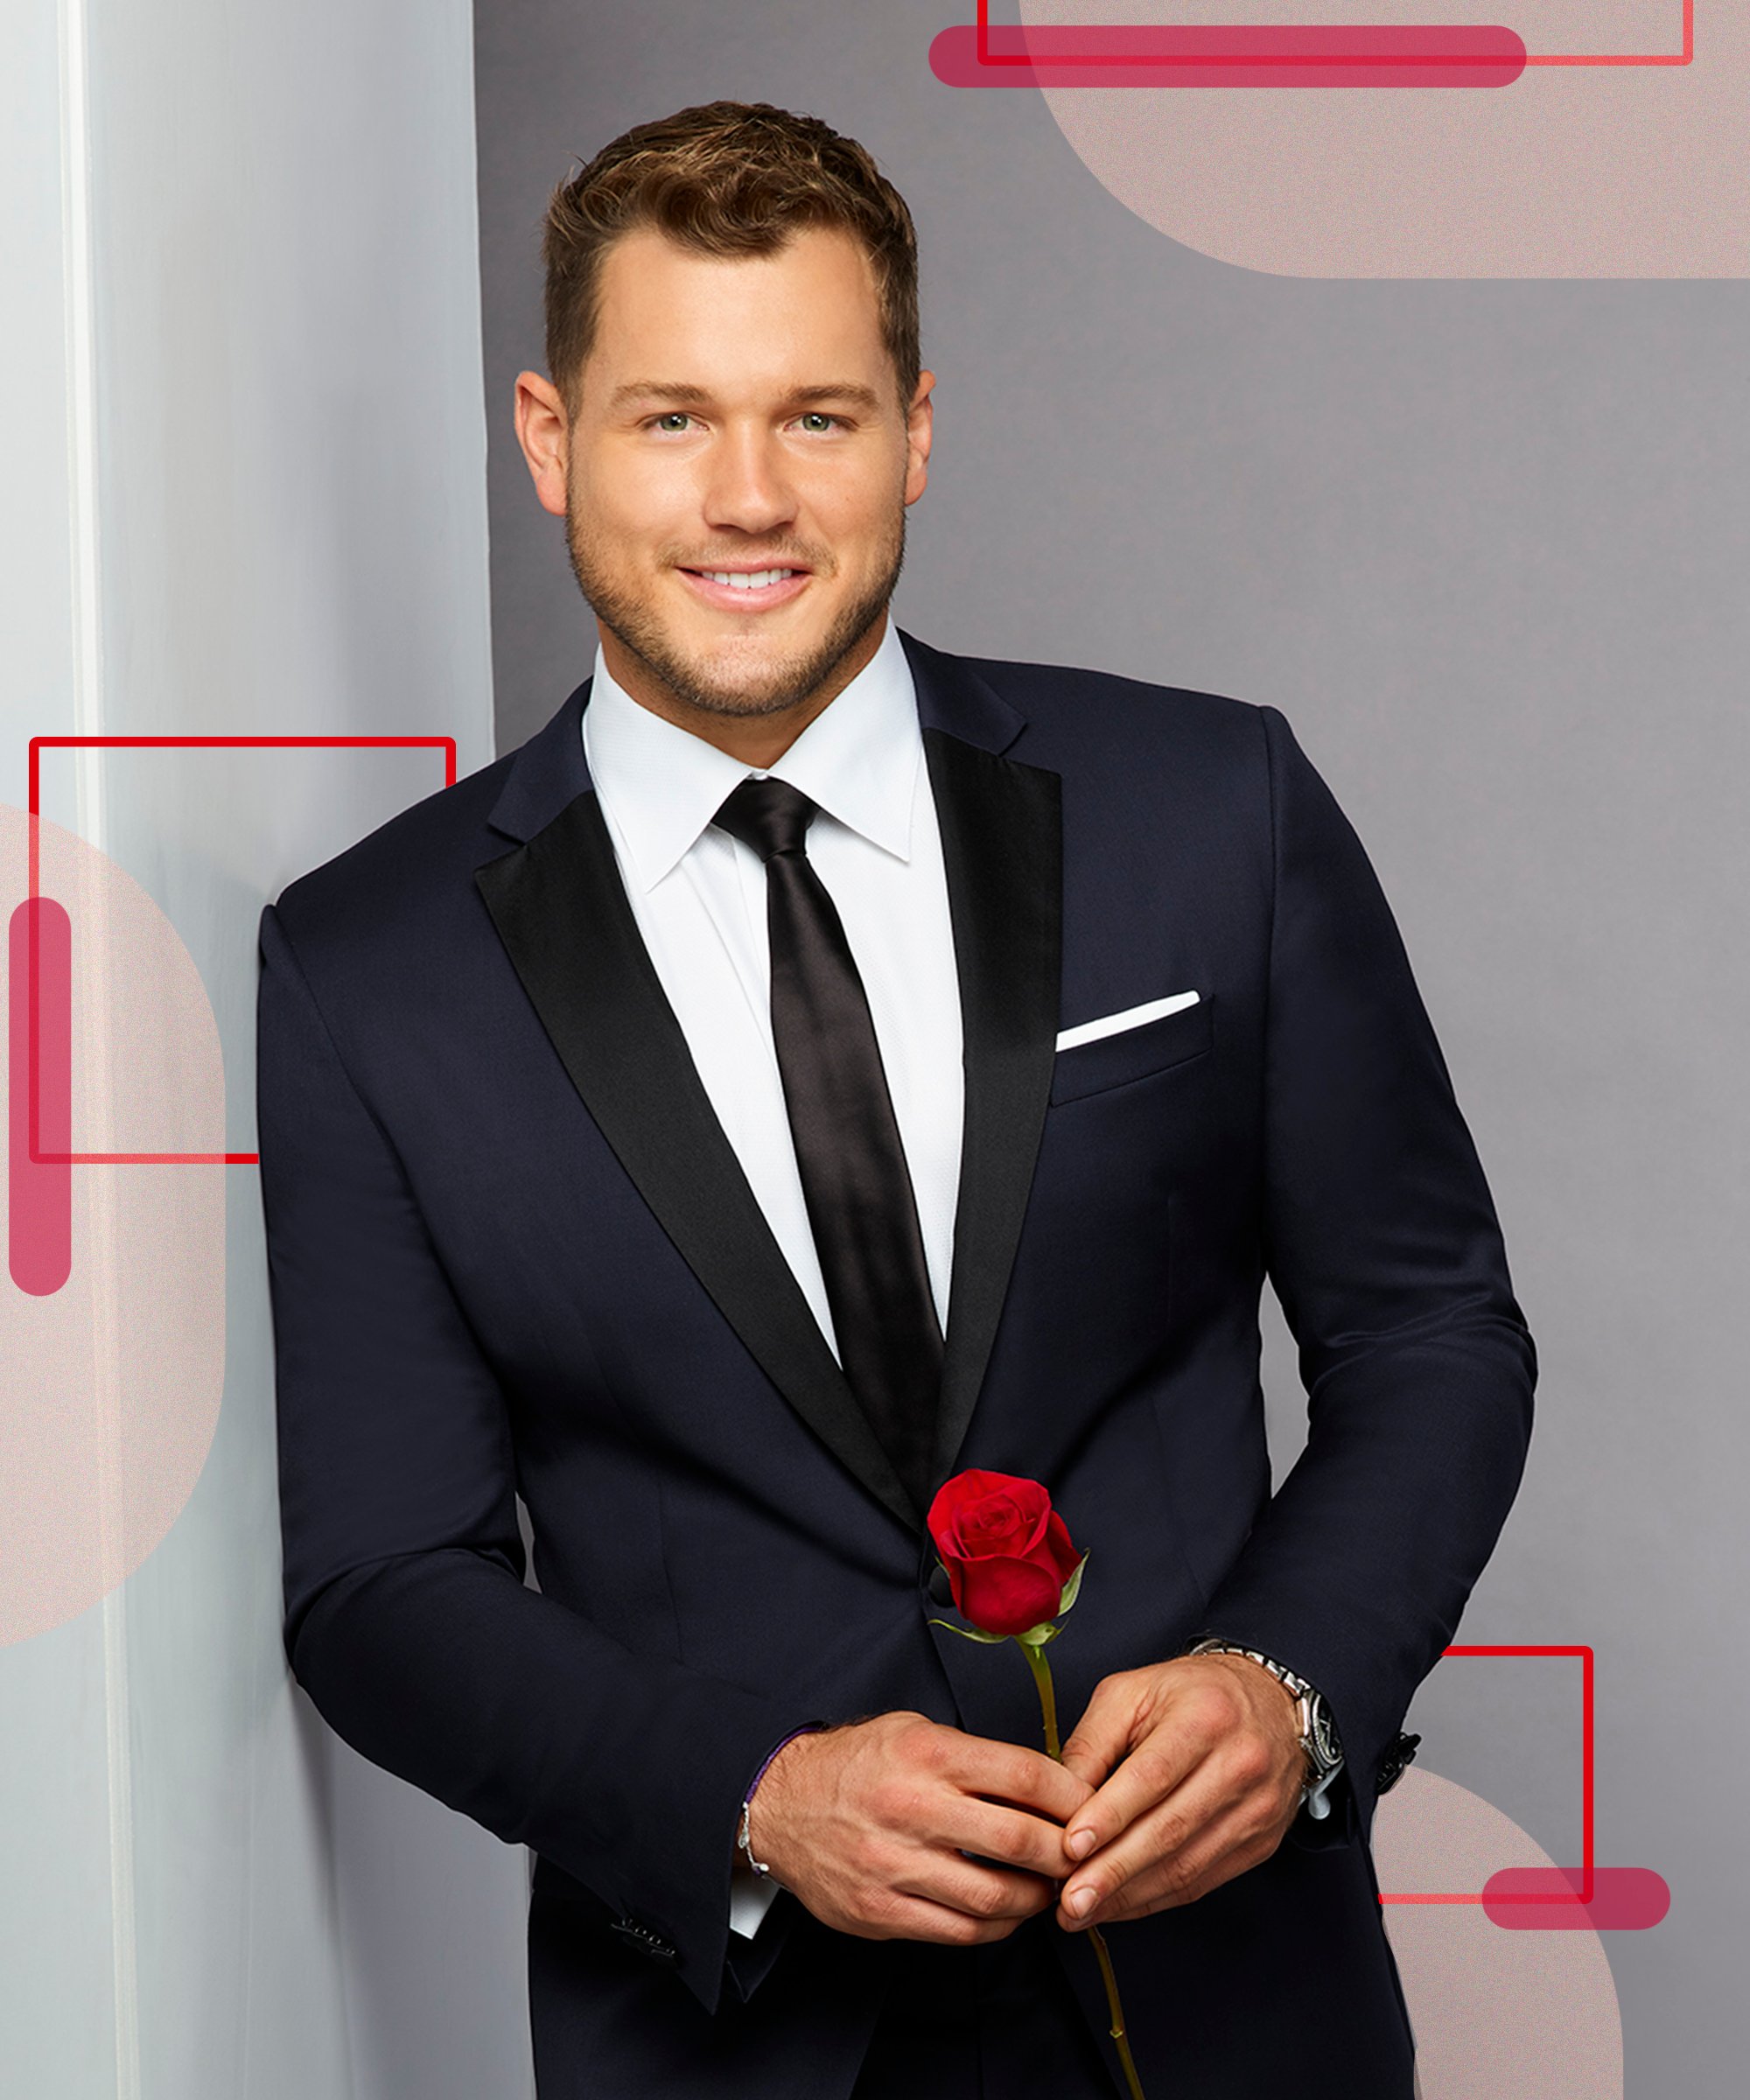 When Was The Bachelor Filmed With Colton Underwood?